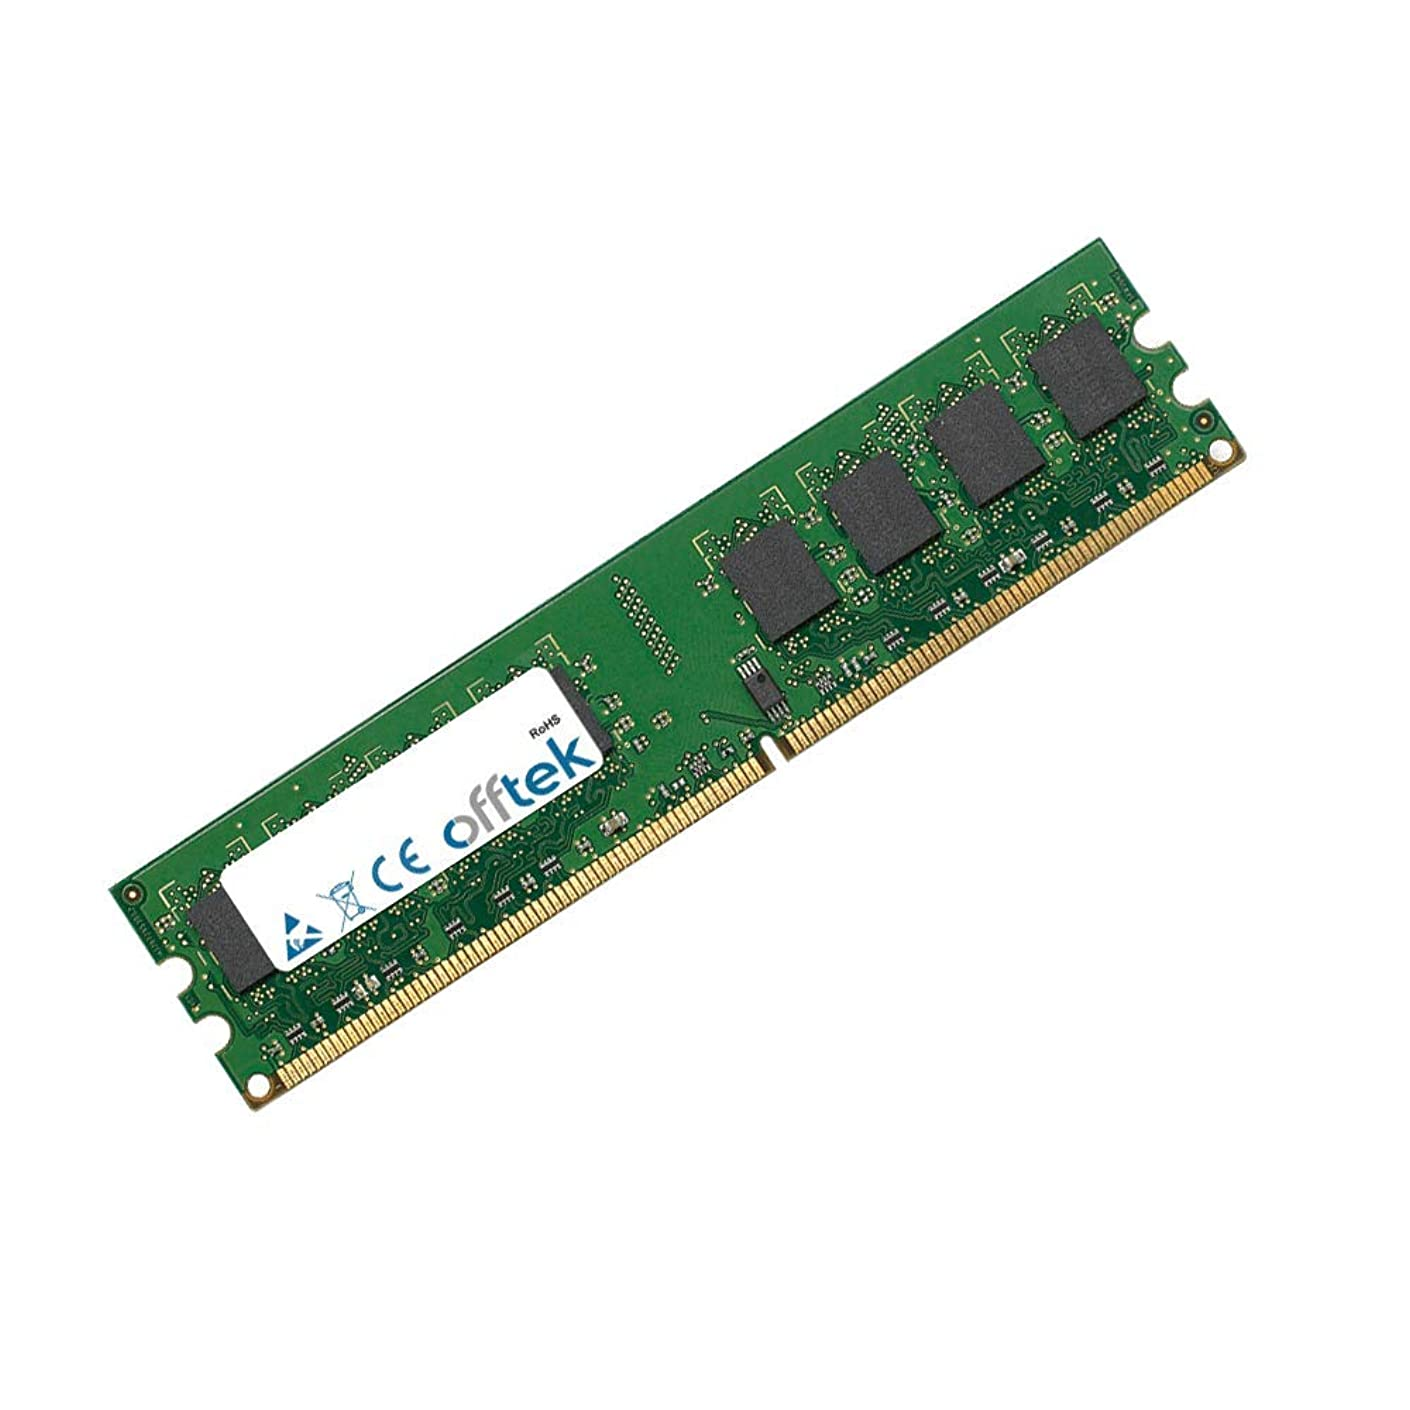 2GB RAM Memory for Dell XPS 630i (DDR2-6400 - Non-ECC) - Desktop Memory Upgrade